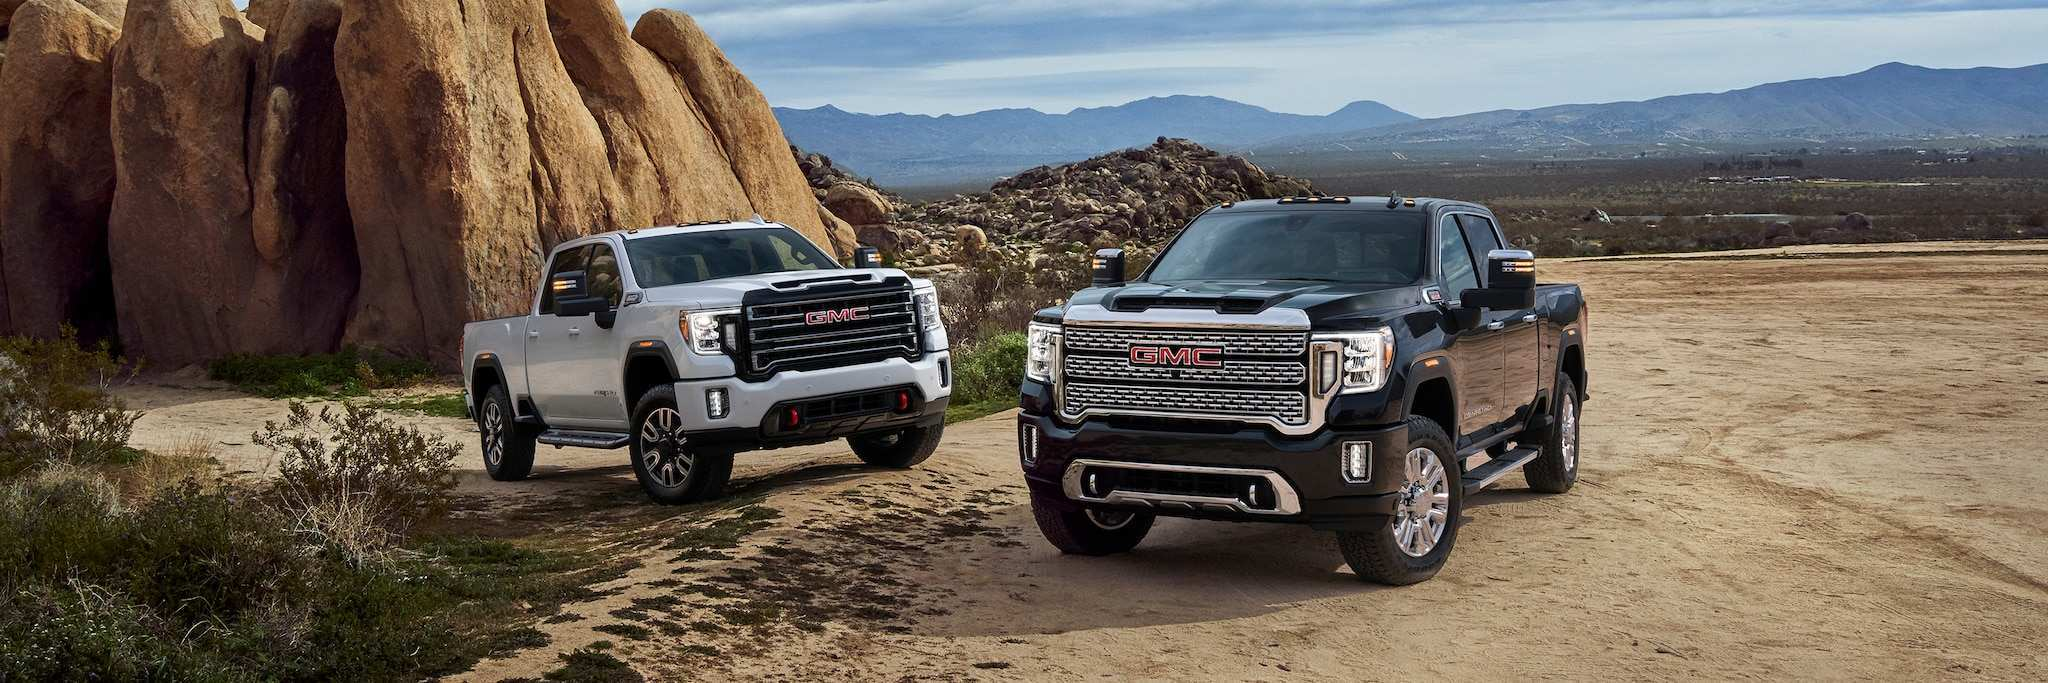 27 Best When Will The 2020 Gmc Denali Be Available Exterior